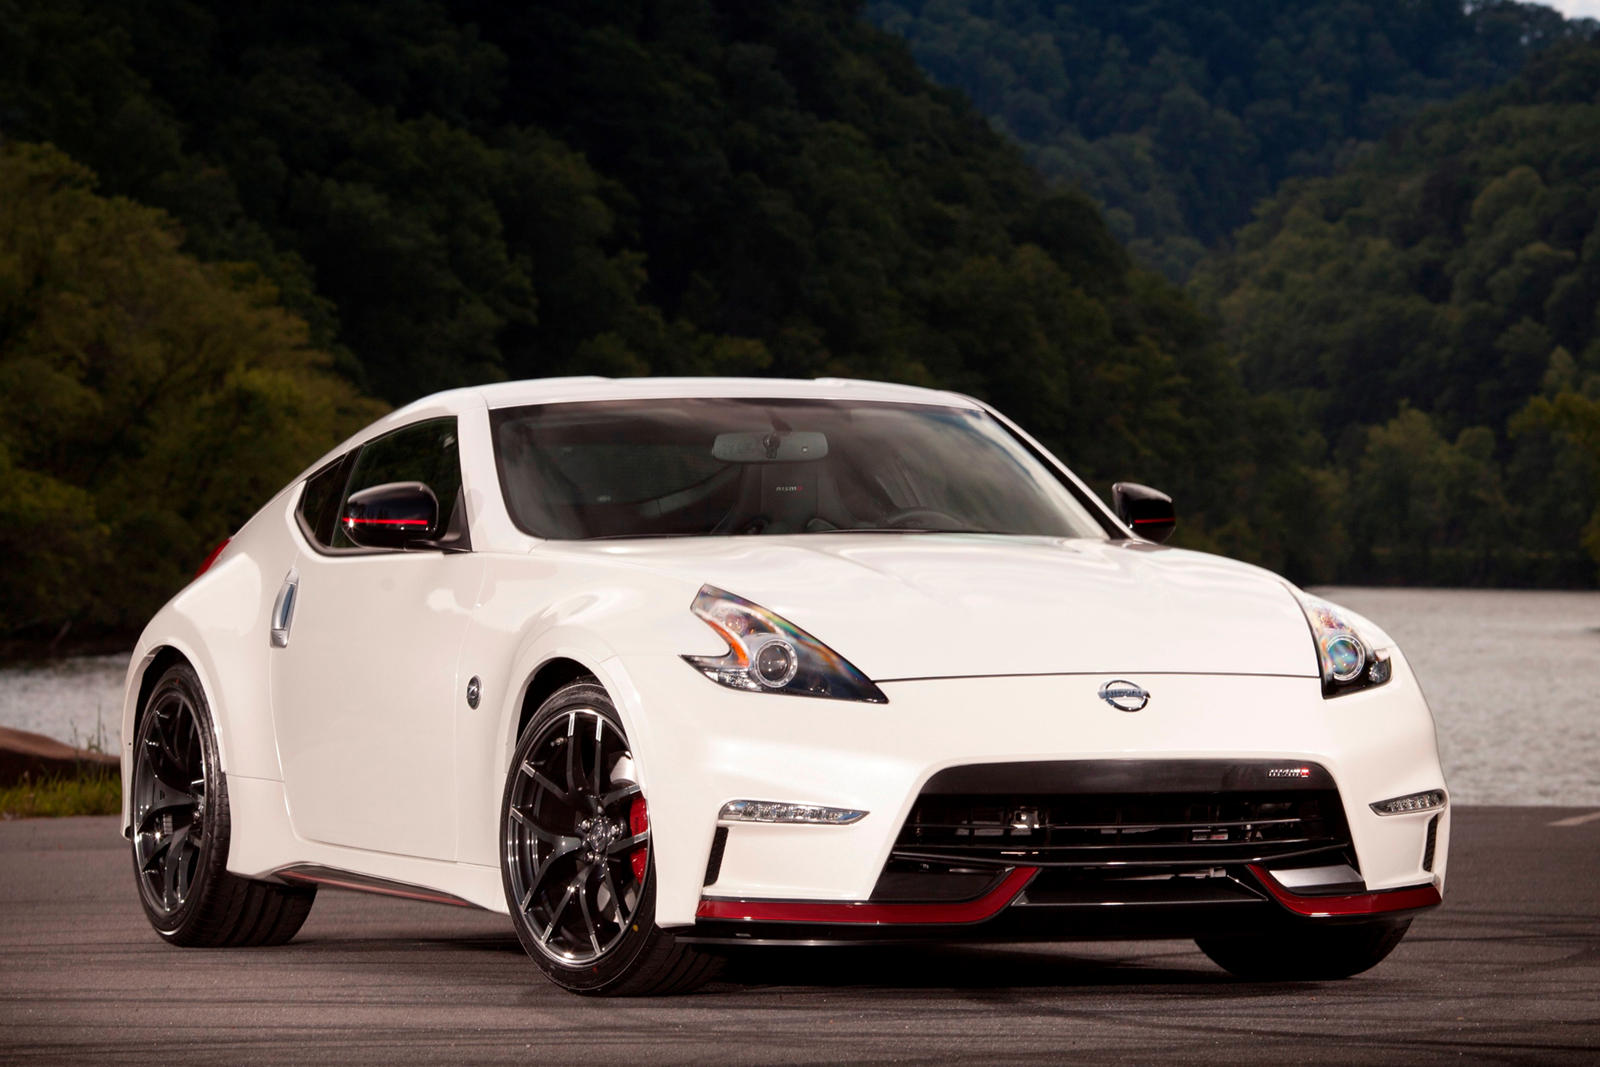 2020 nissan 370z nismo review trims specs price new interior features exterior design and specifications carbuzz carbuzz